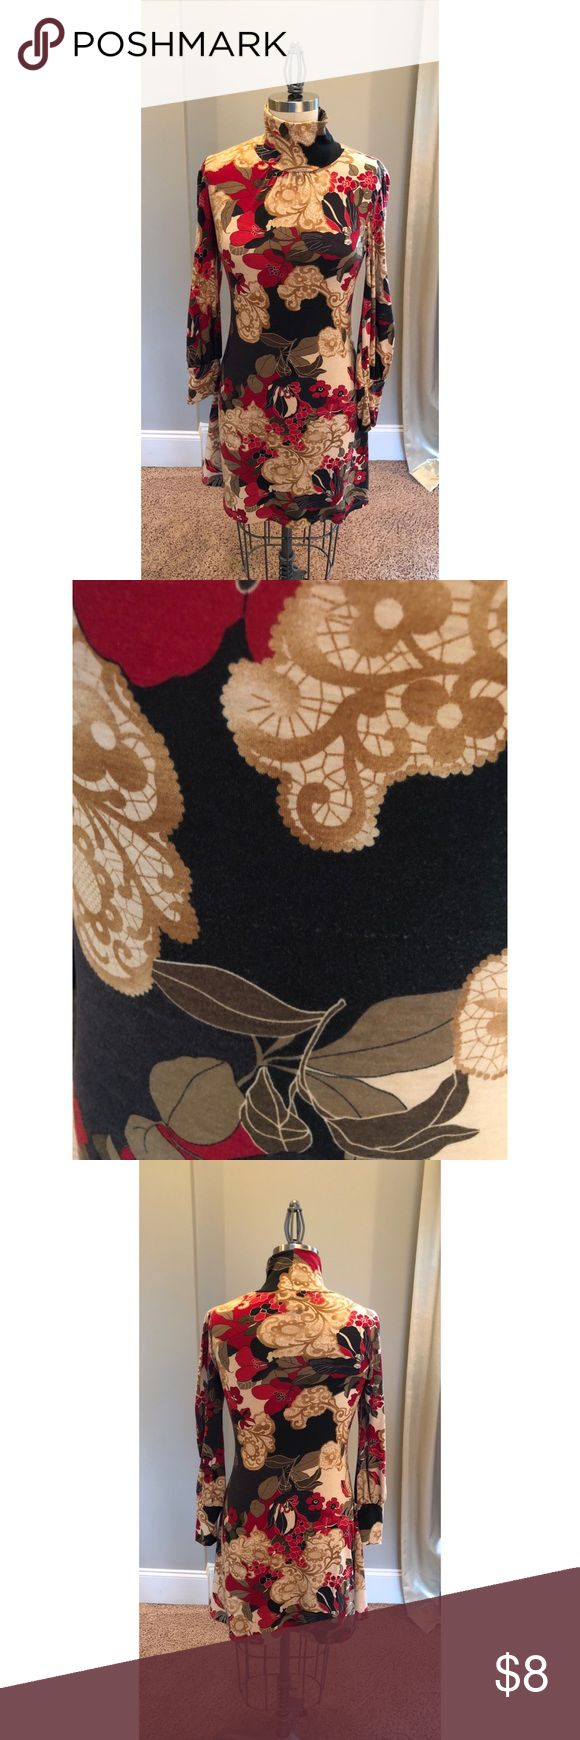 Red, Black, And Cream Long Sleeve Floral Dress Red, black, and cream long sleeve dress size medium. Floral and lace print. Wide wrist cuffs. Does have some piling. Other than that gently used and in good condition. Runs true to size. Beiza Dresses Mini